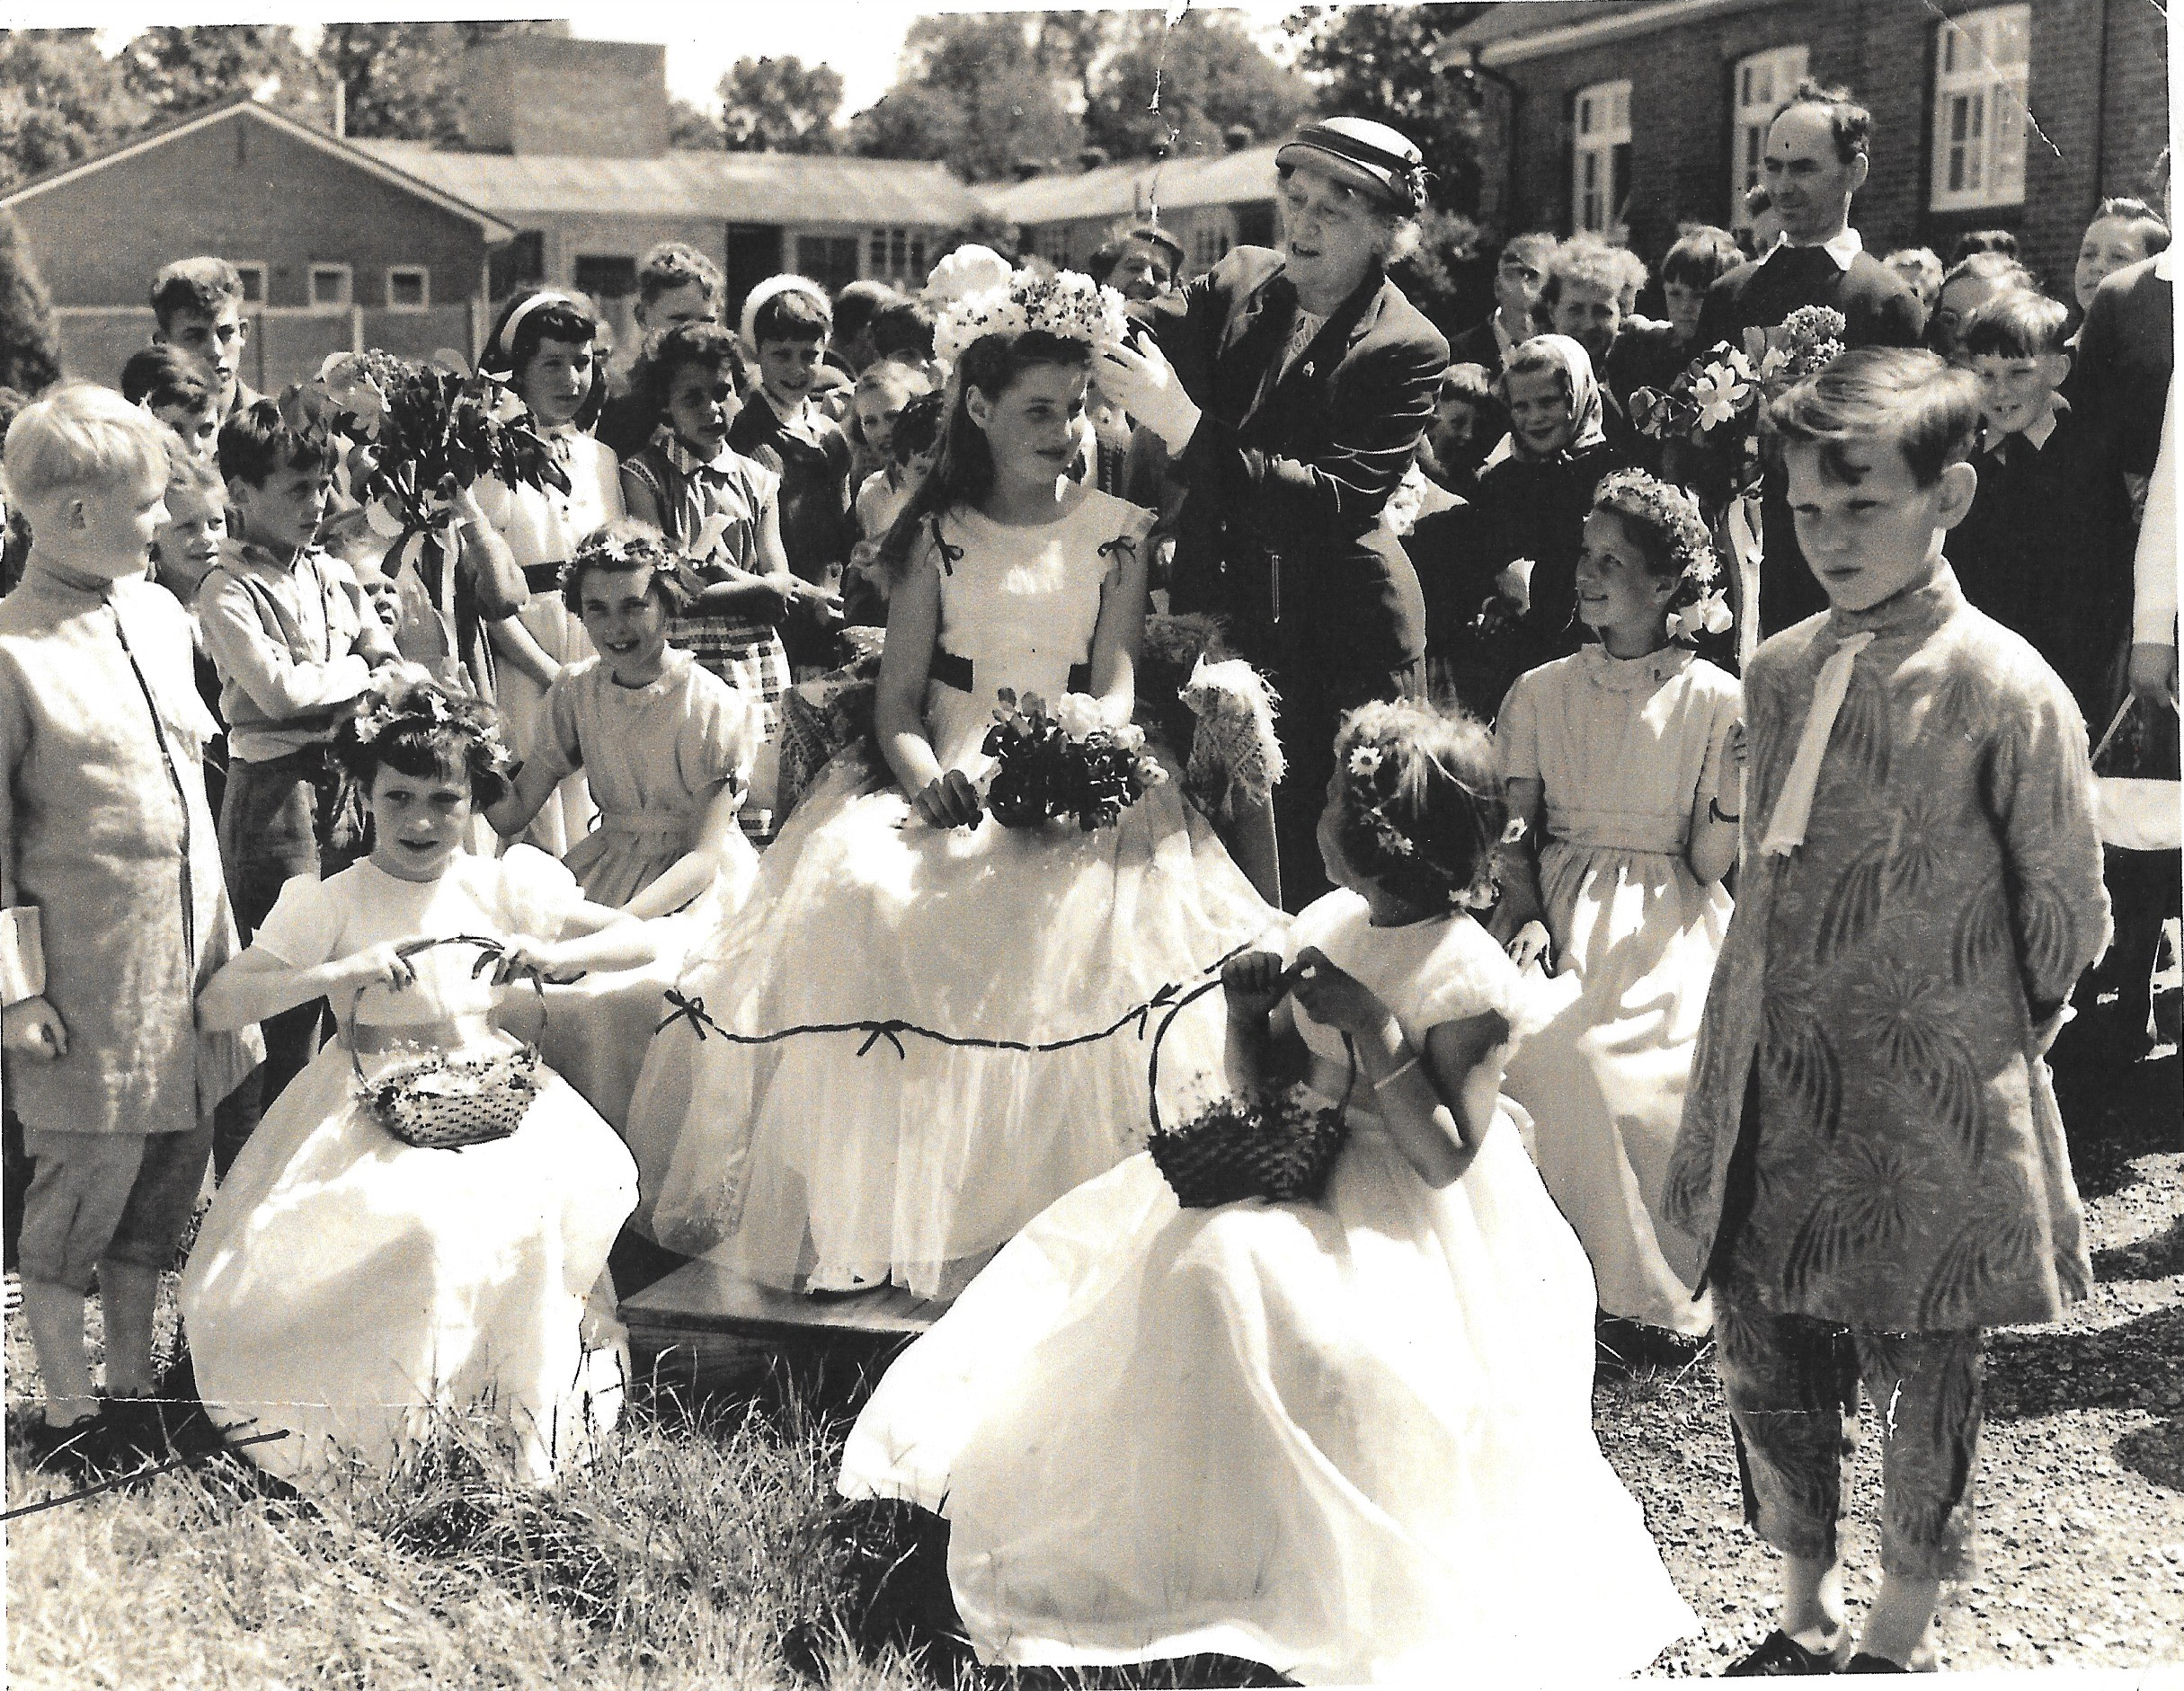 "This picture appeared in the newspaper in 1956(?) with the headline ""Stanmore's pretty May Queen""  The caption read: ""The Mayor of Winchester, Councillor Miss E. M. Barnes, crowns the May Queen after opening Stanmore Fete. The pretty May Queen is Miss Penelope Hudd and her attendants are Ann Mason, Angela Martin, Amanda Trigg and Glenis Sommerbell; and the two pages, Anthony Stride and Richard Bramley."